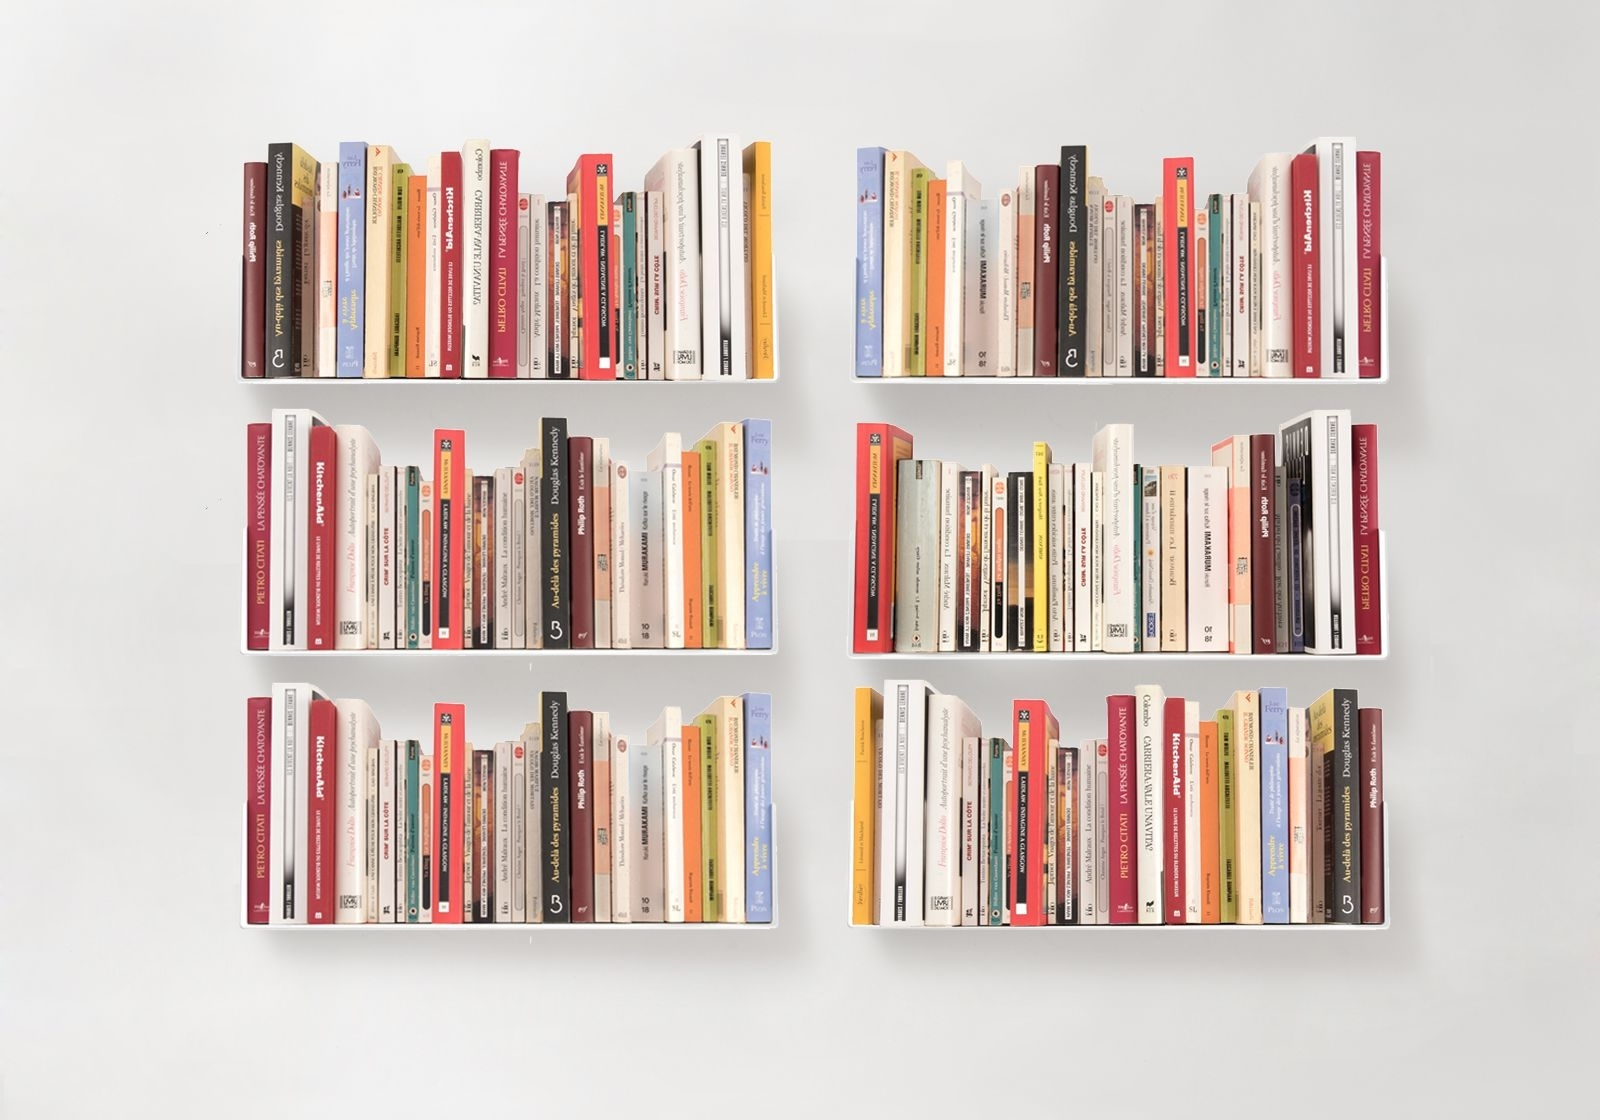 High Quality Bookcases In Widely Used Floating Bookshelves – Teebooks (View 7 of 15)